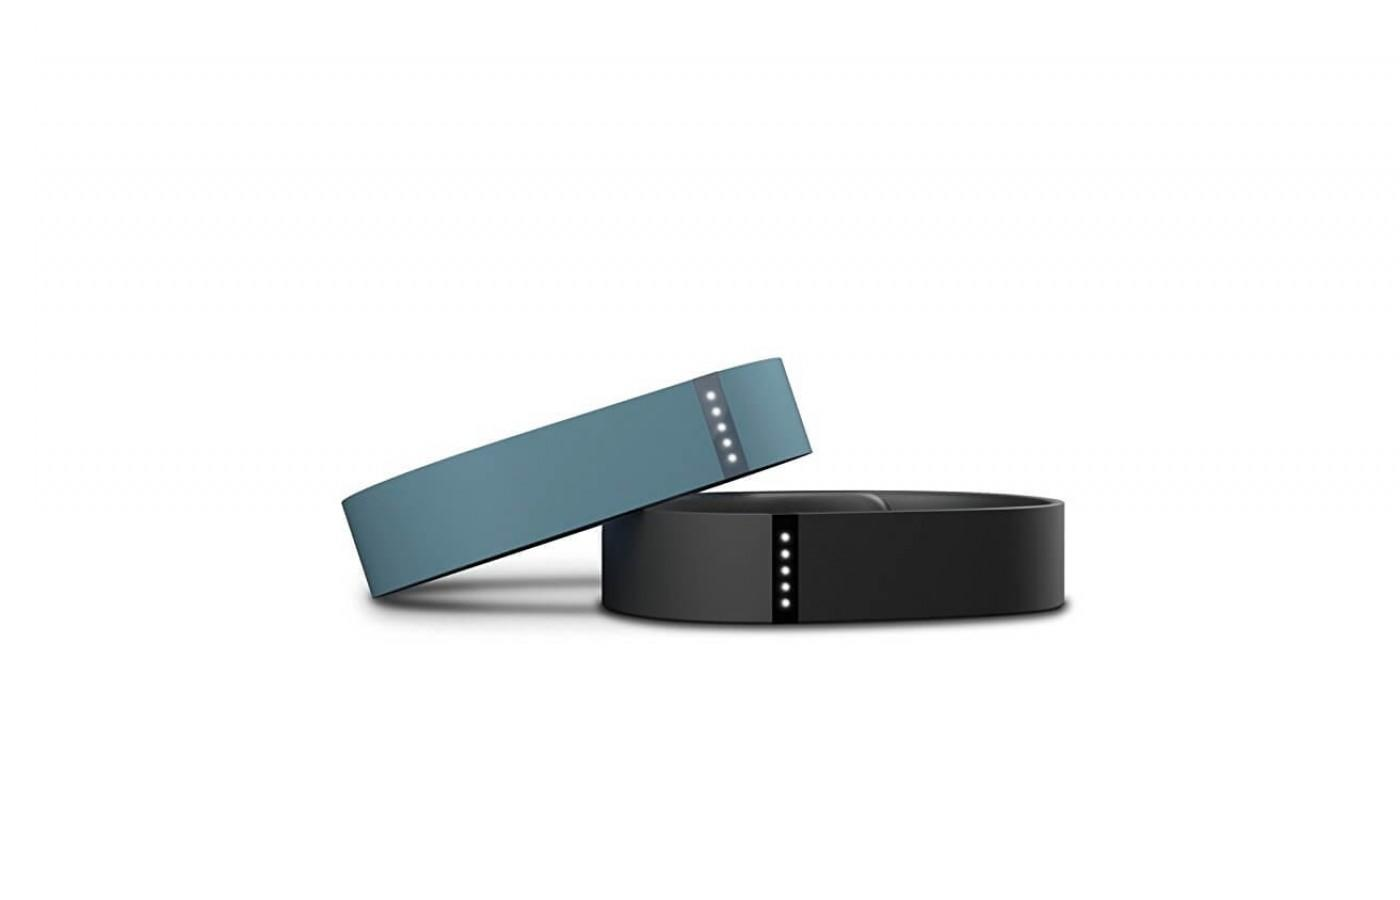 The Flex is available in a variety of colors